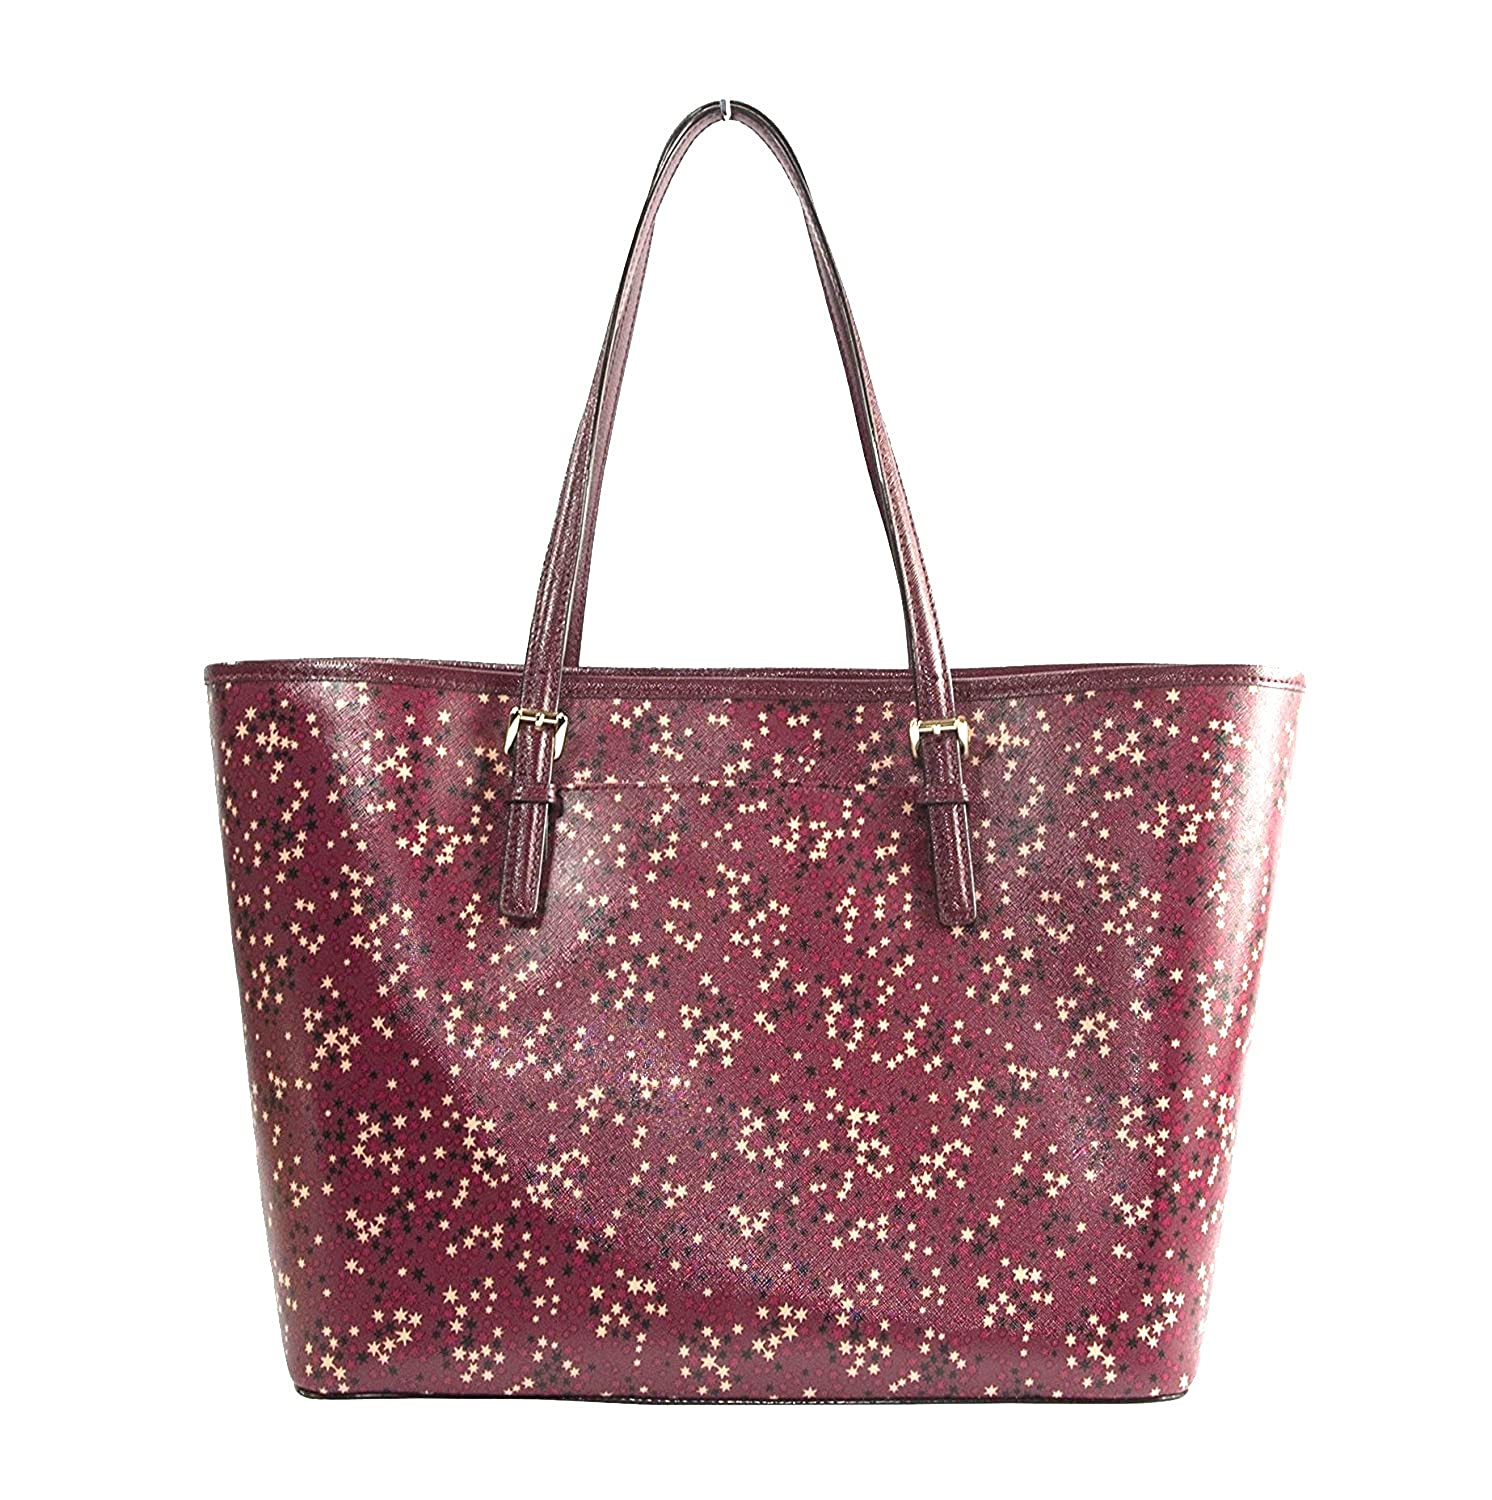 0d2df7e2d797 Amazon.com: Michael Kors Illustrations Mulberry Stars Limited Edition Large  Carryall Tote Bag: Shoes